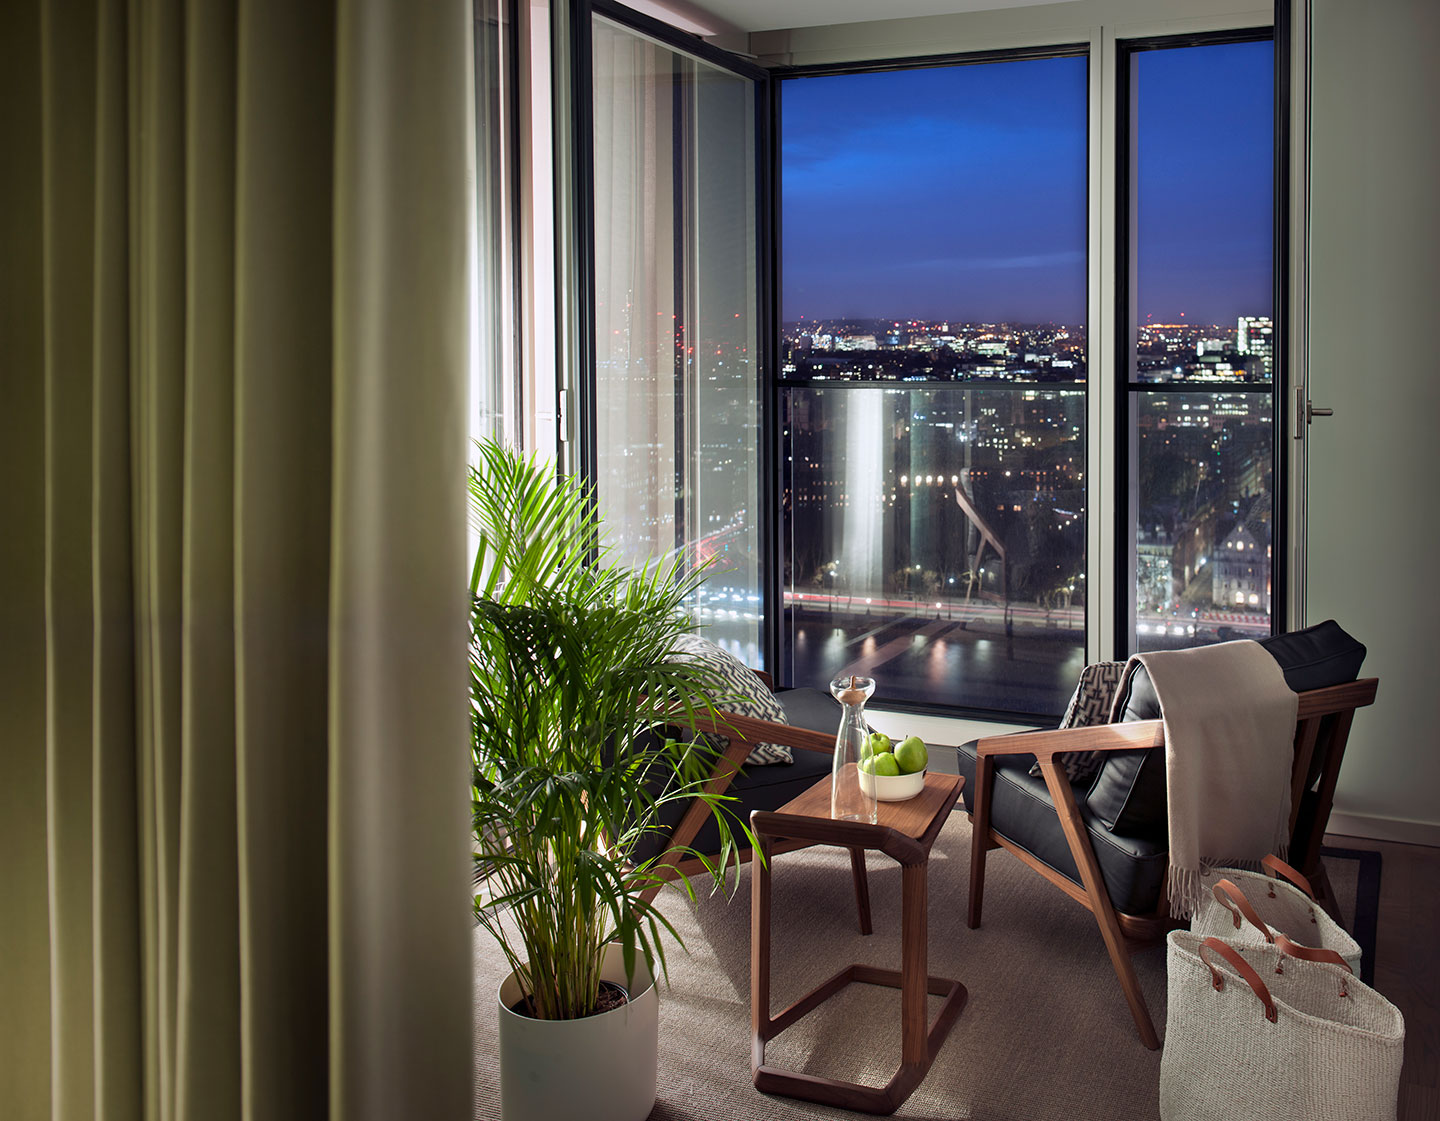 A houseplant marks the start of a quiet sitting space overlooking central London from above in luxury designed Southbank Tower apartment interior